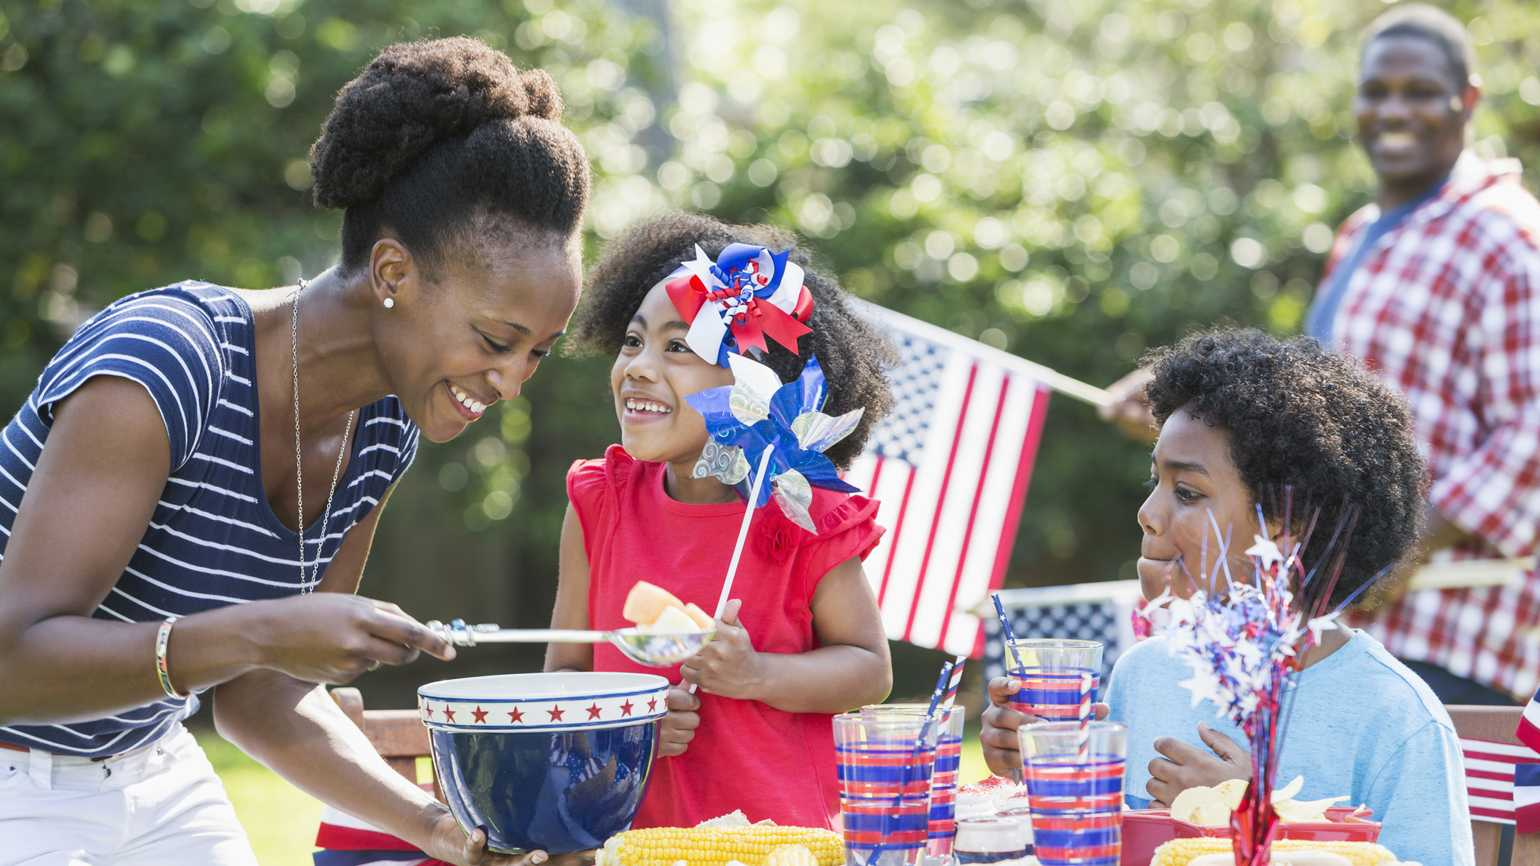 A family barbecue during Memorial Day weekend.